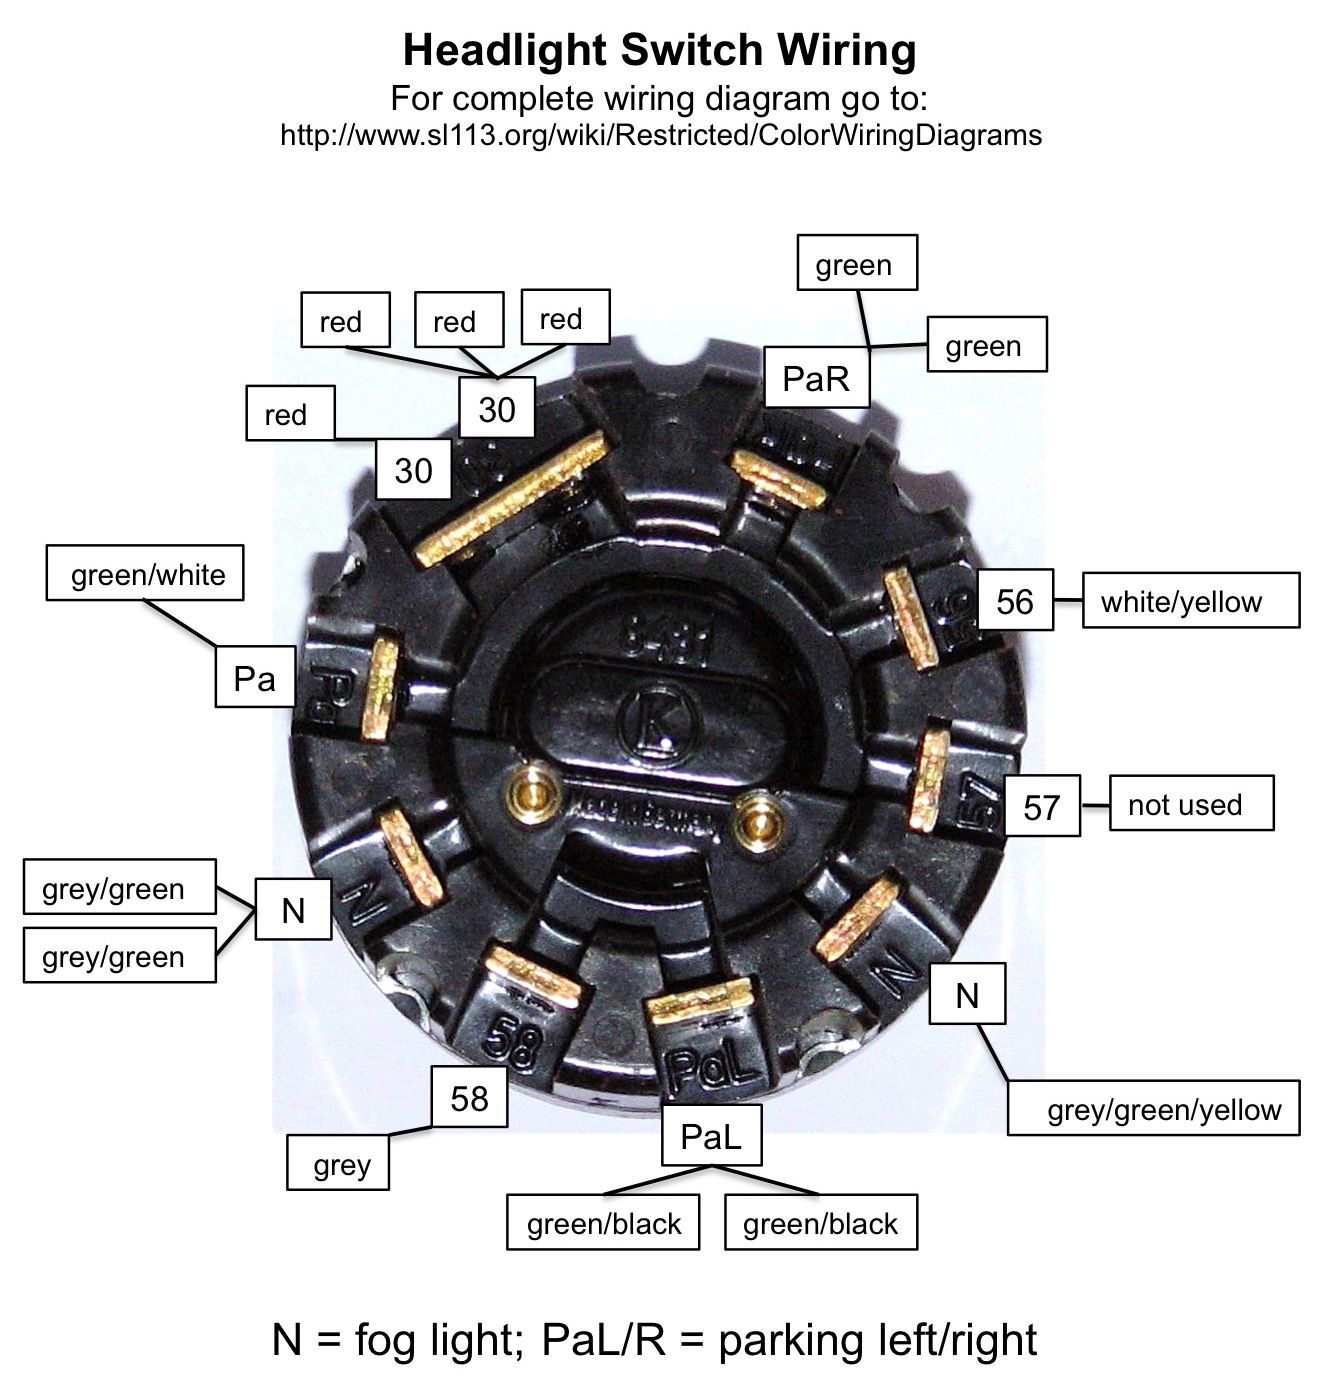 s13 240sx headlight wiring diagram apollo 65 up halo headlights, wiring, free engine image for user manual download